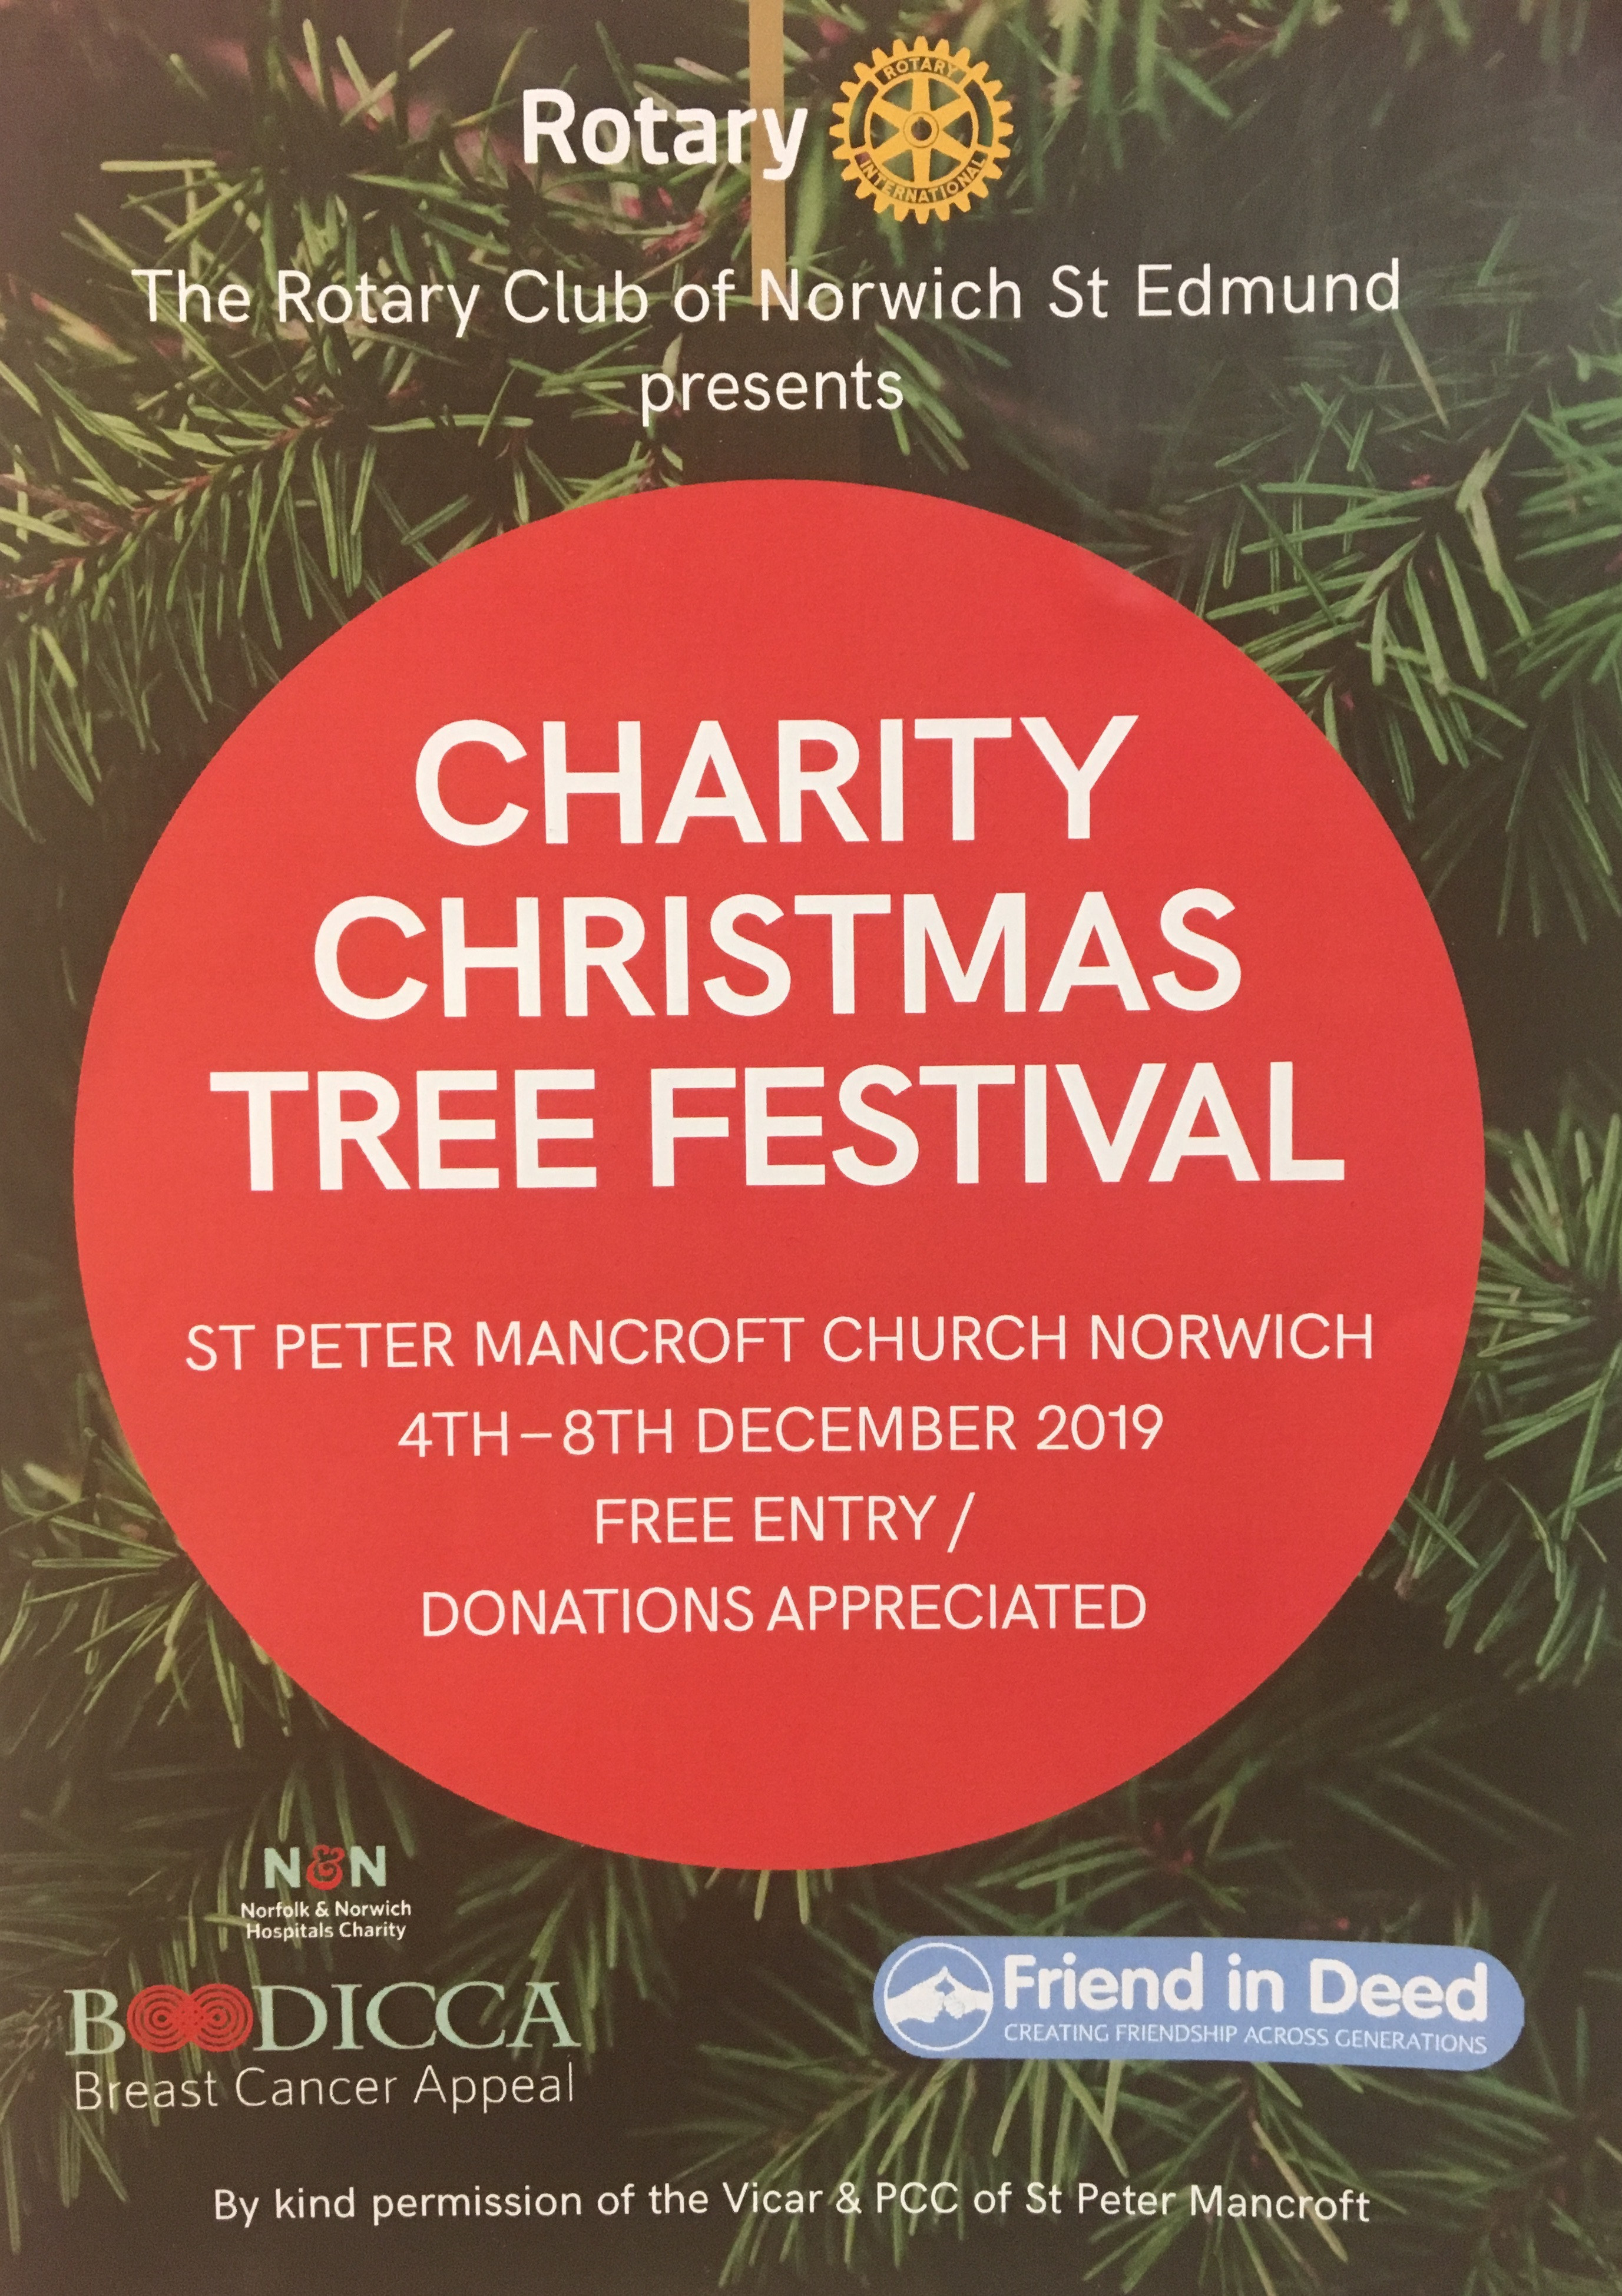 Charity Christmas Tree Festival supports Boudicca